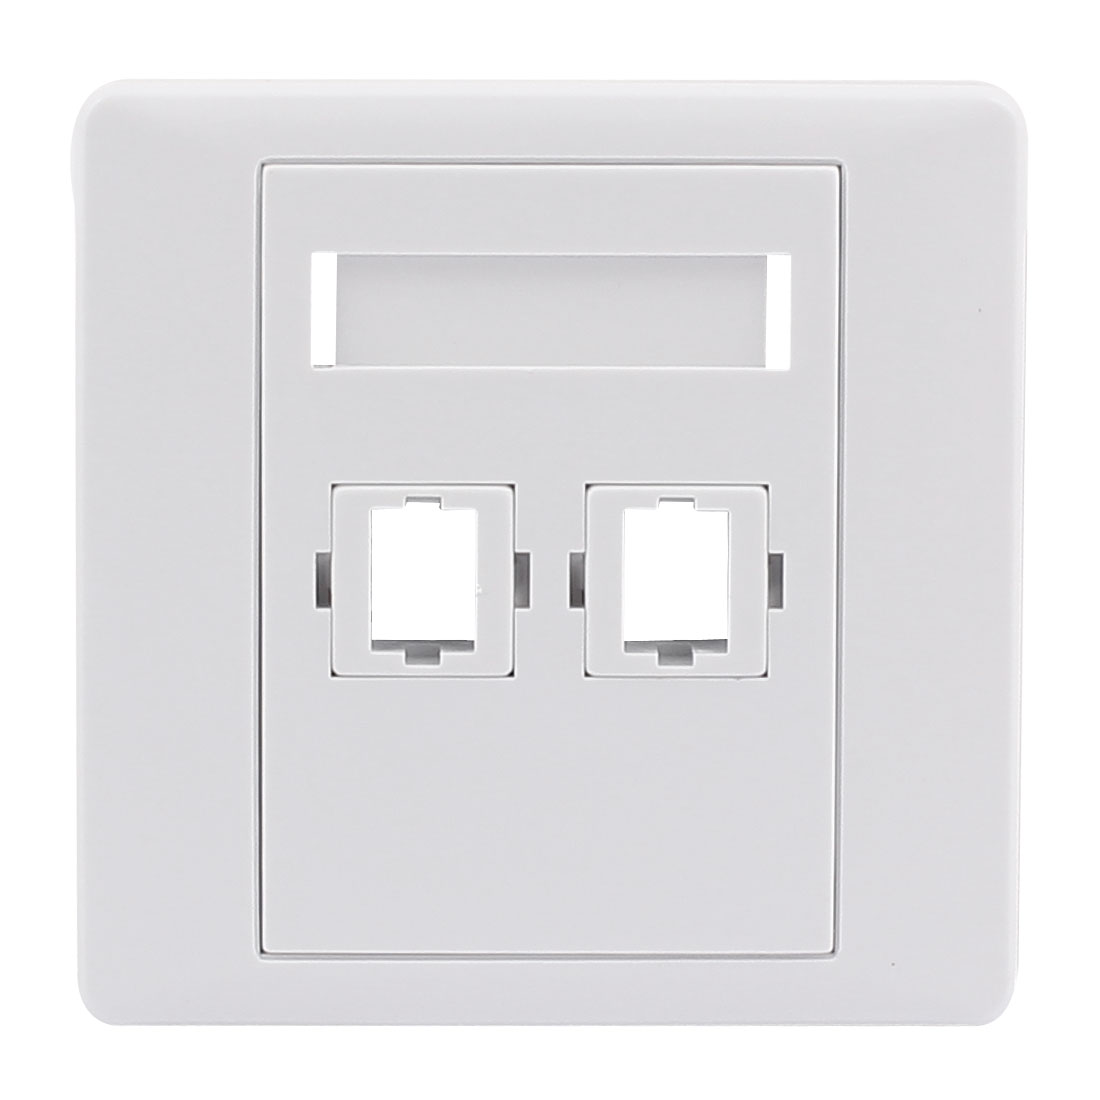 SC Fiber Optical Patch Cord Adapter Mount 2 Sockets Wall Plate Panel